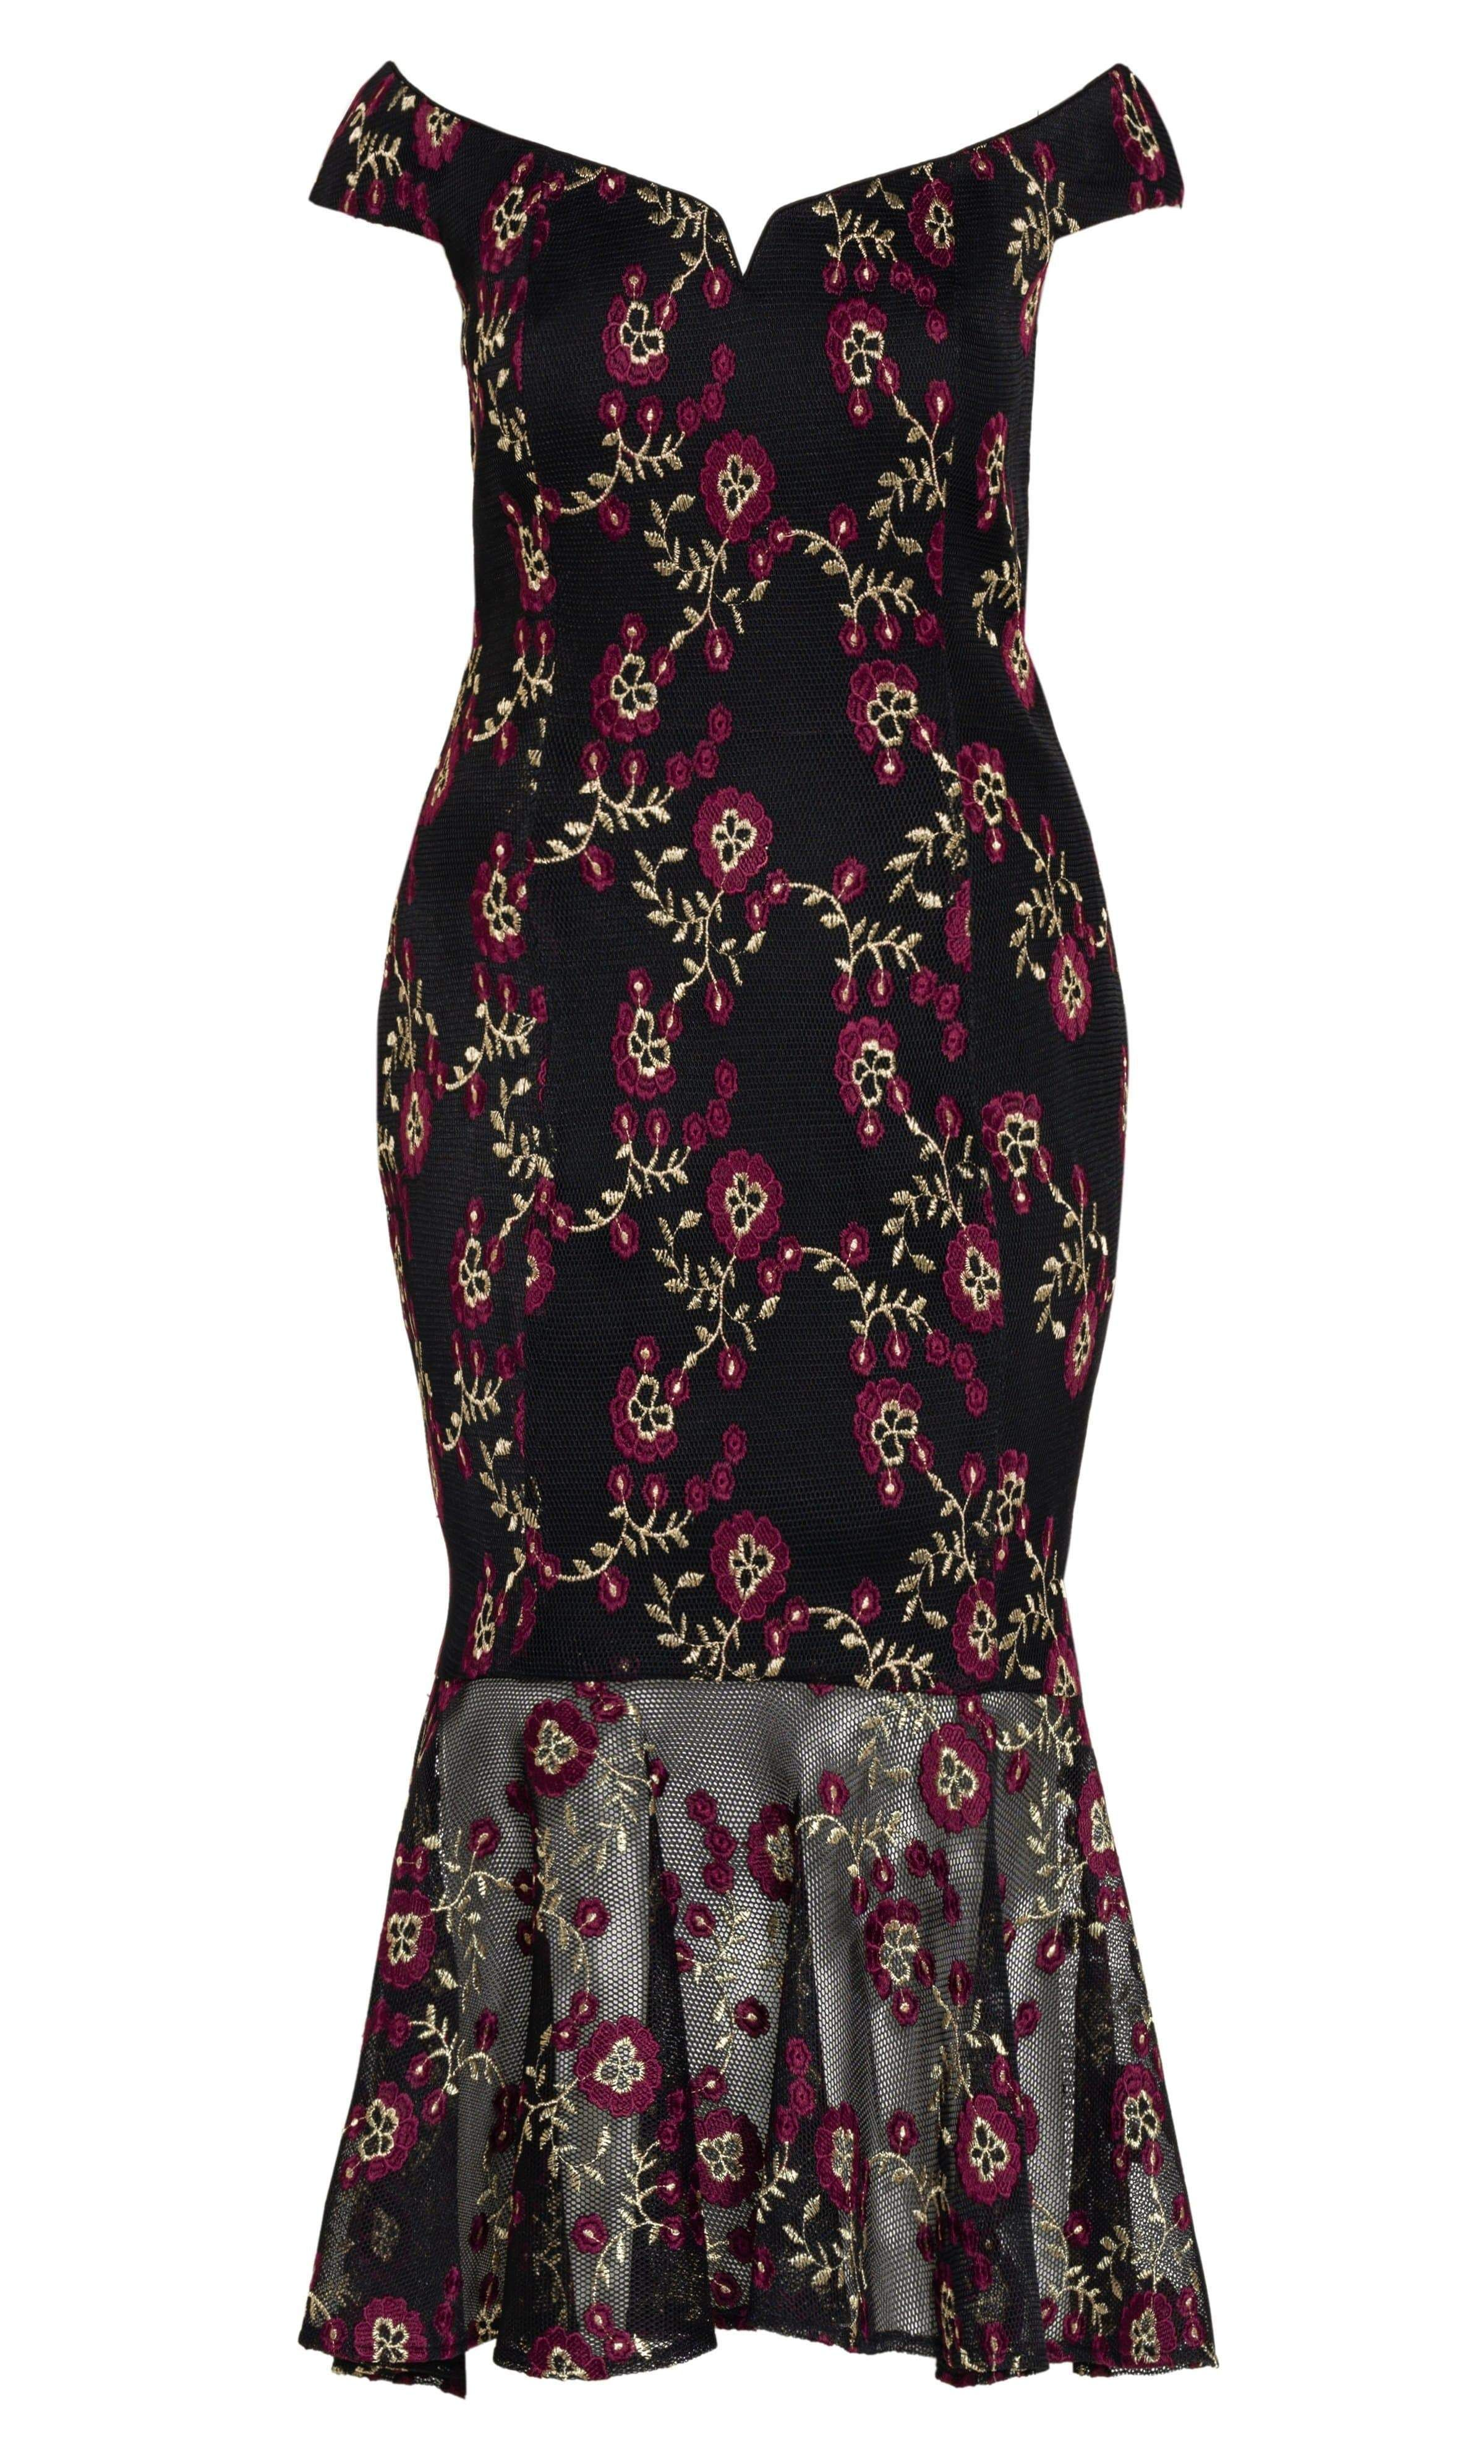 City Chic Decadence Dress in Black Size 14/X-Small